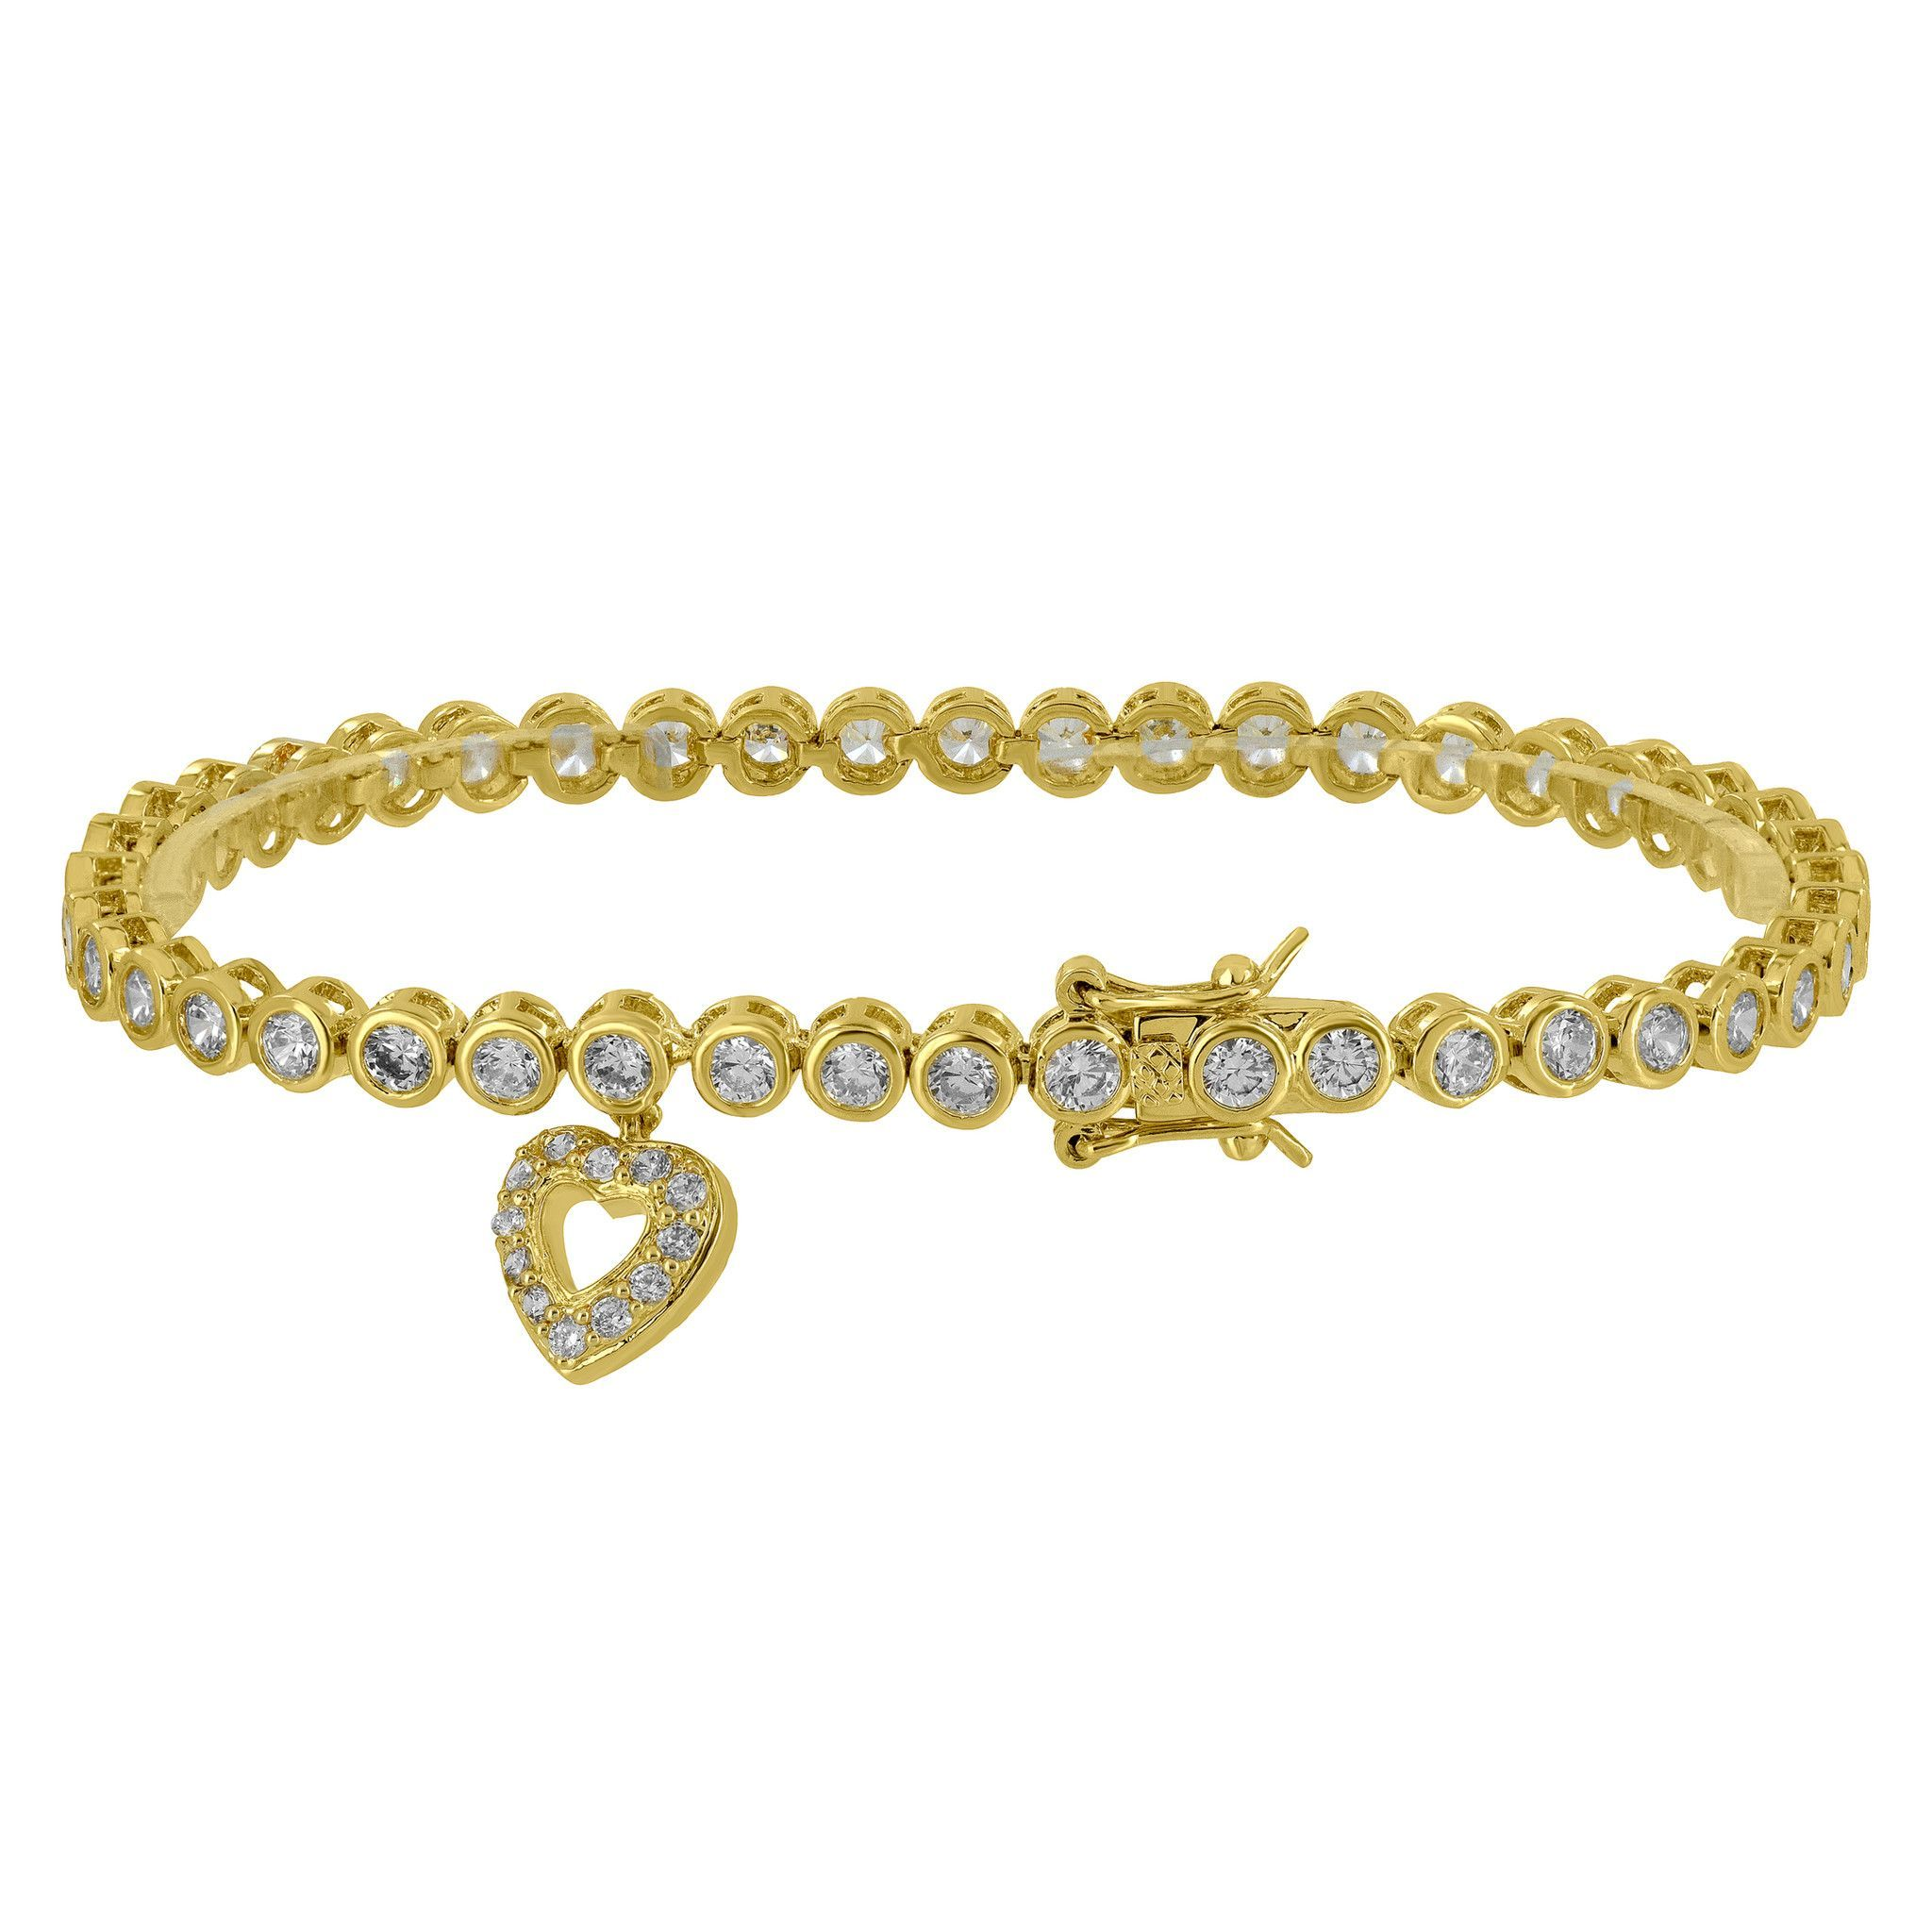 monk poms heavenbracelet products house heaven gold bracelet design fix braclet